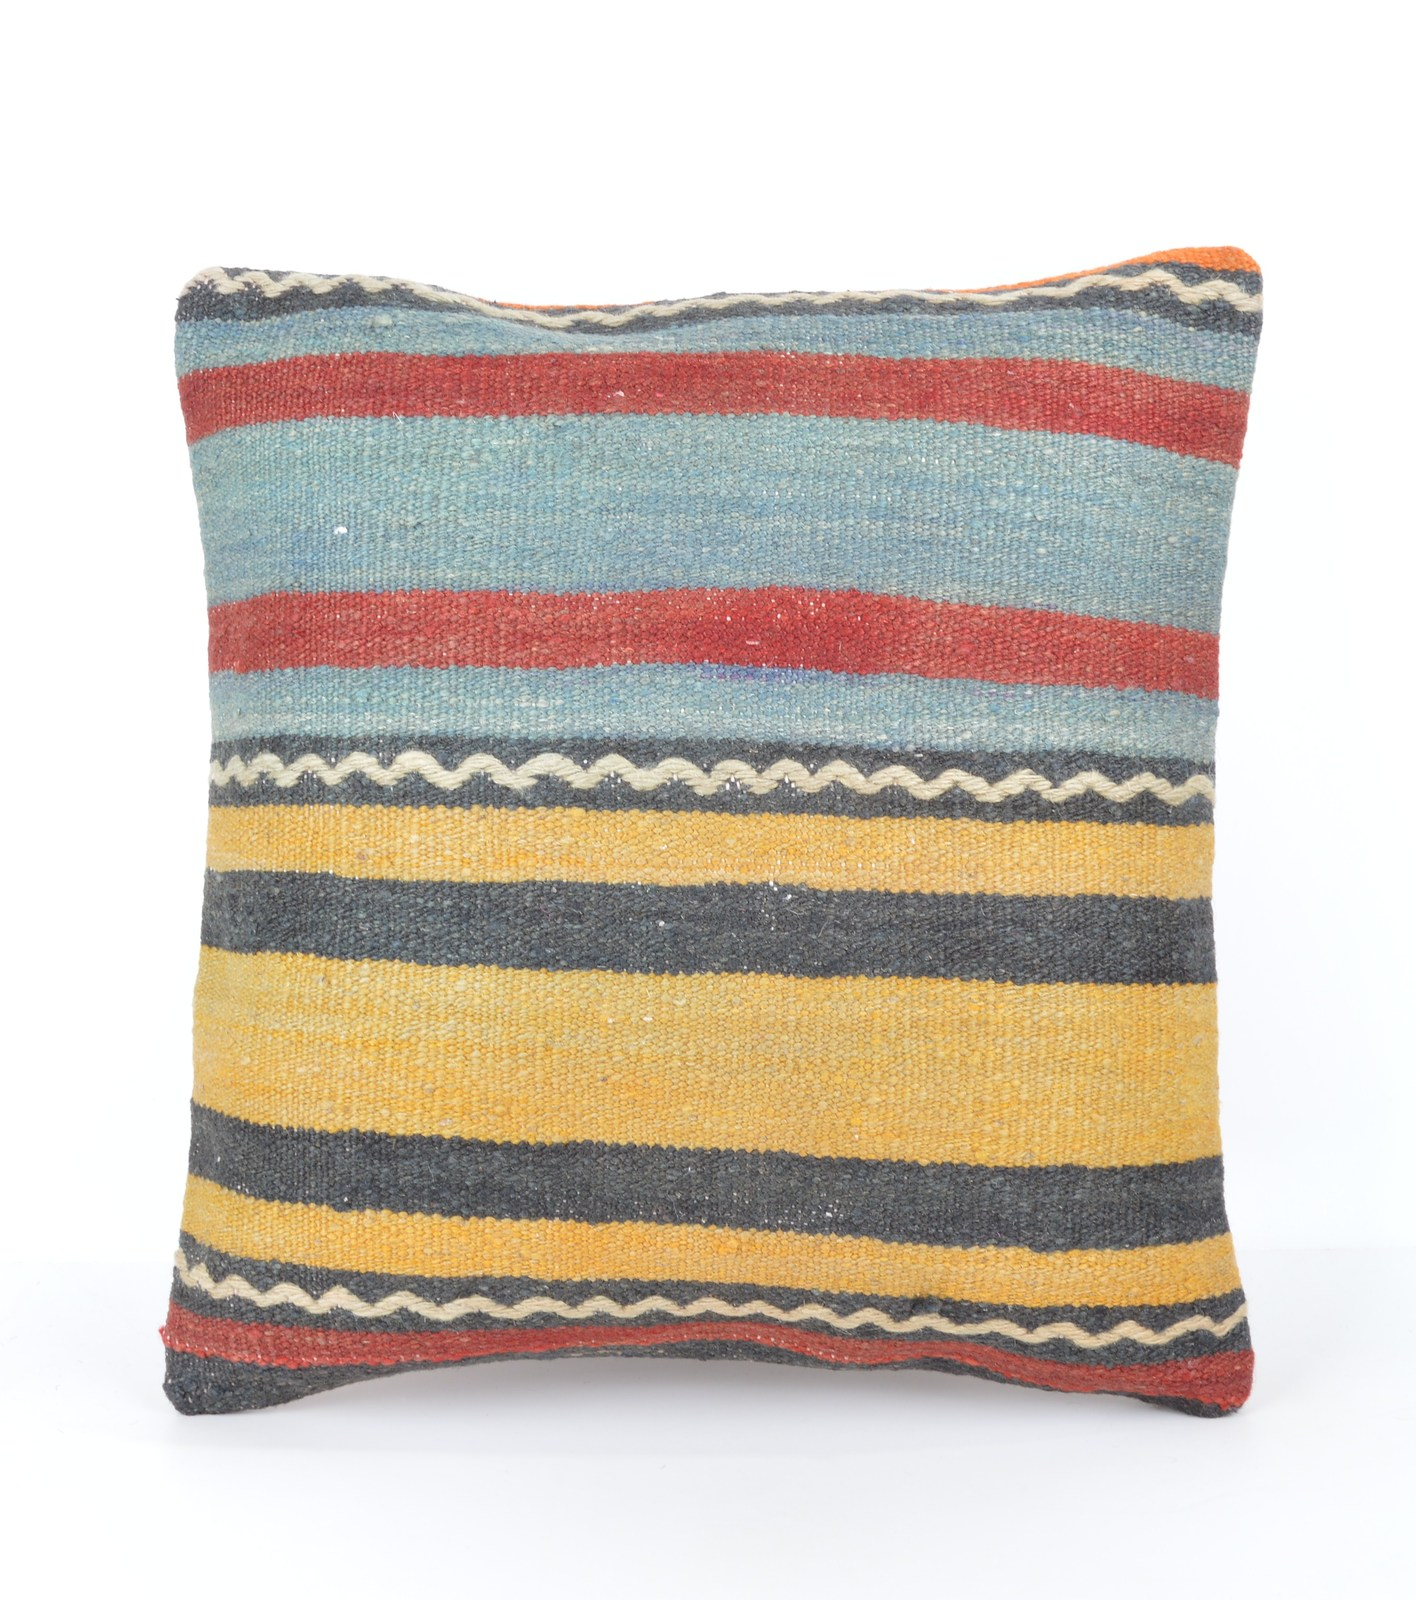 Discount kilim pillow cushion covers sale kilim throw for Buy pillows online cheap